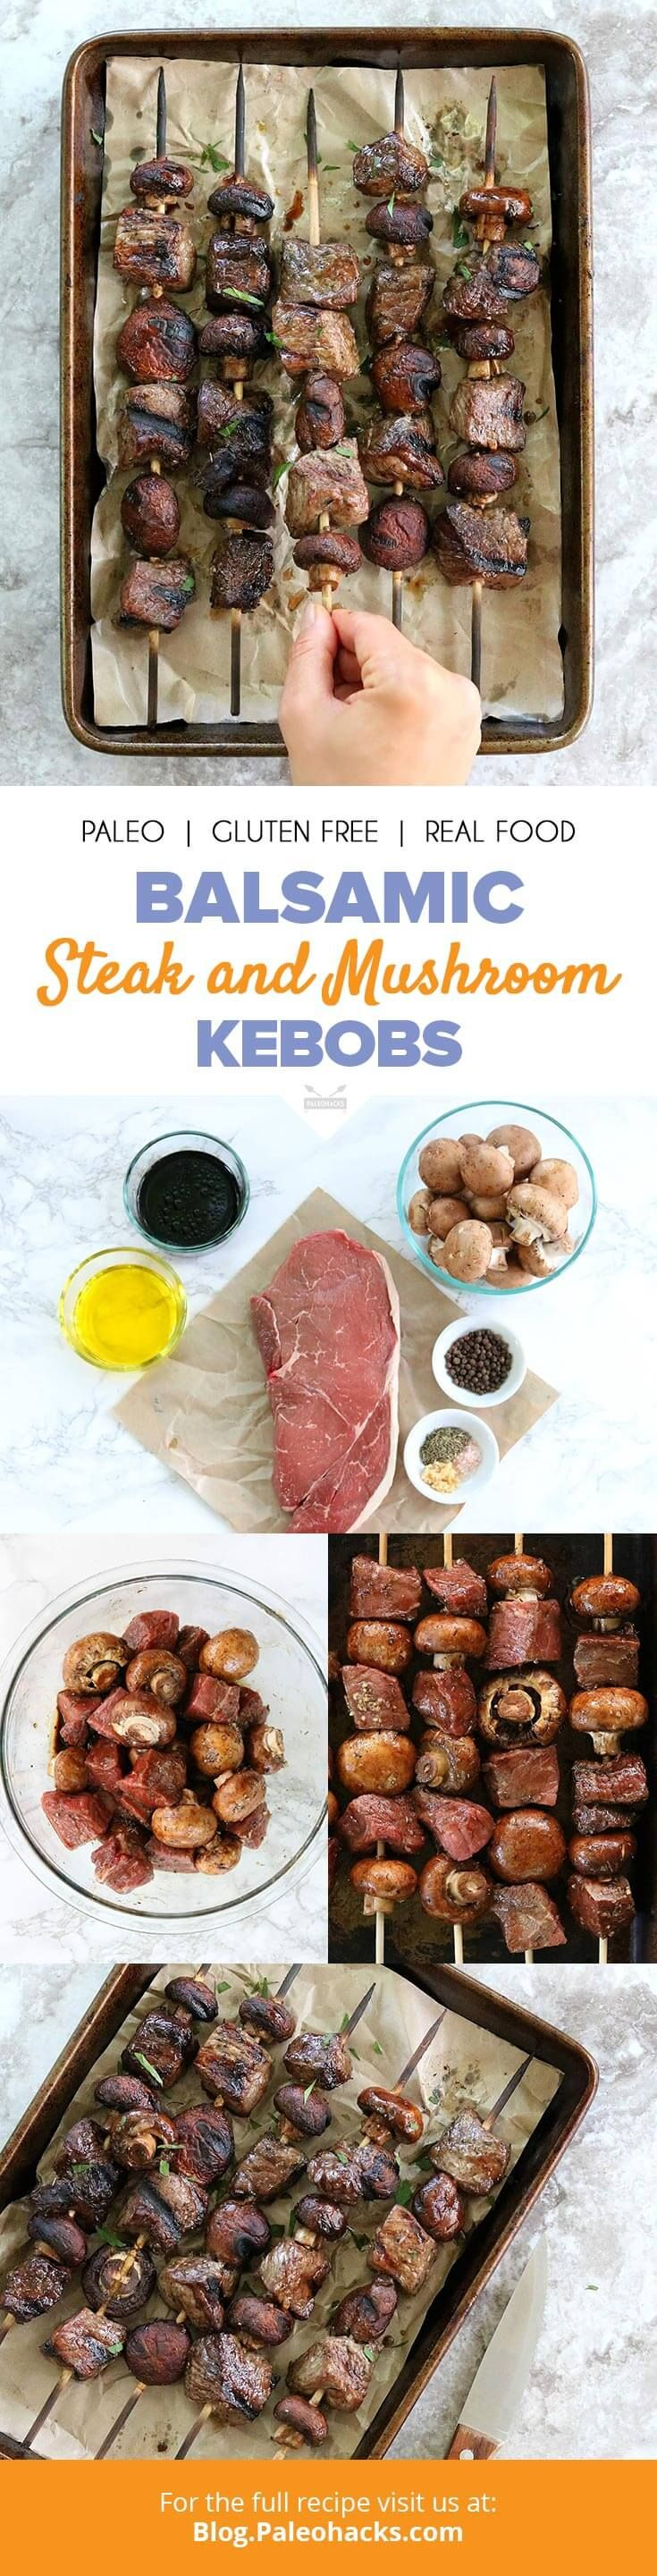 Get your barbecue tongs ready! These balsamic-marinated steak and baby bella mushroom shish kebobs are about to become your new grilling favorite. Get the recipe here: http://paleo.co/steakkebobs